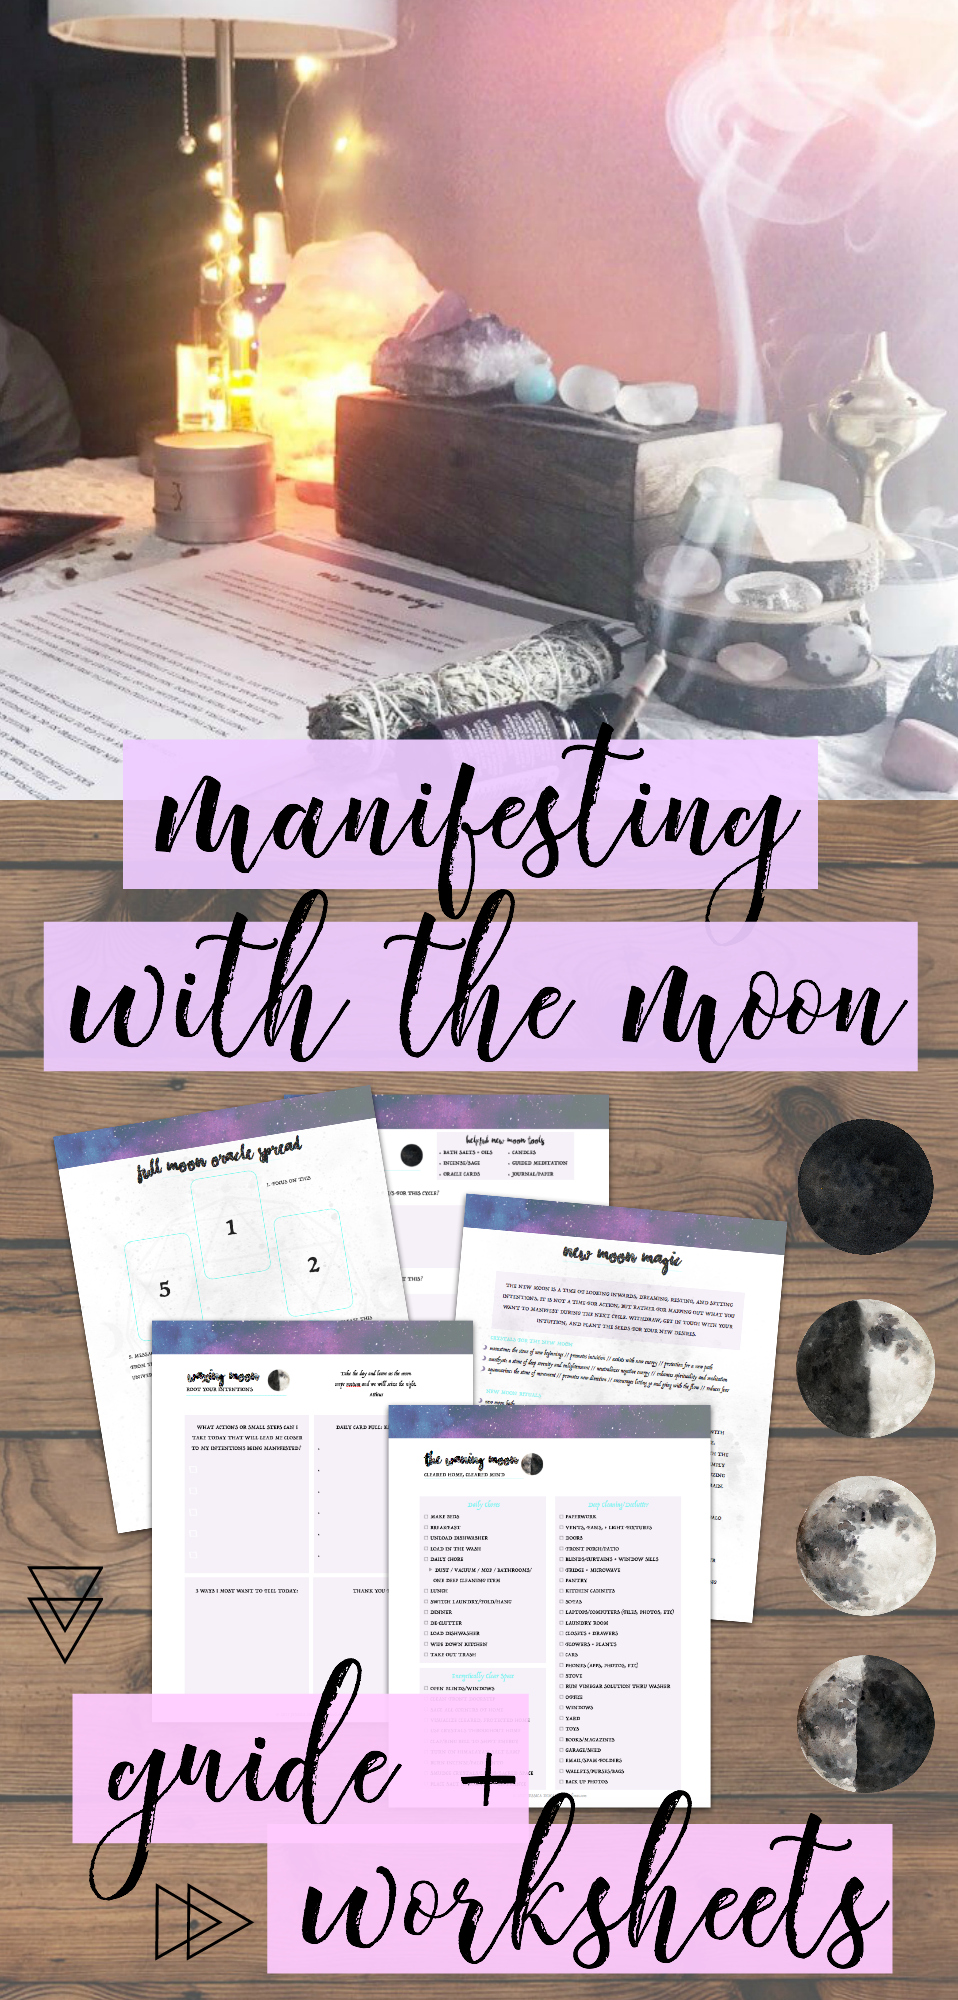 Waxing Moon Self-Care Ritual - Dwell in Magic